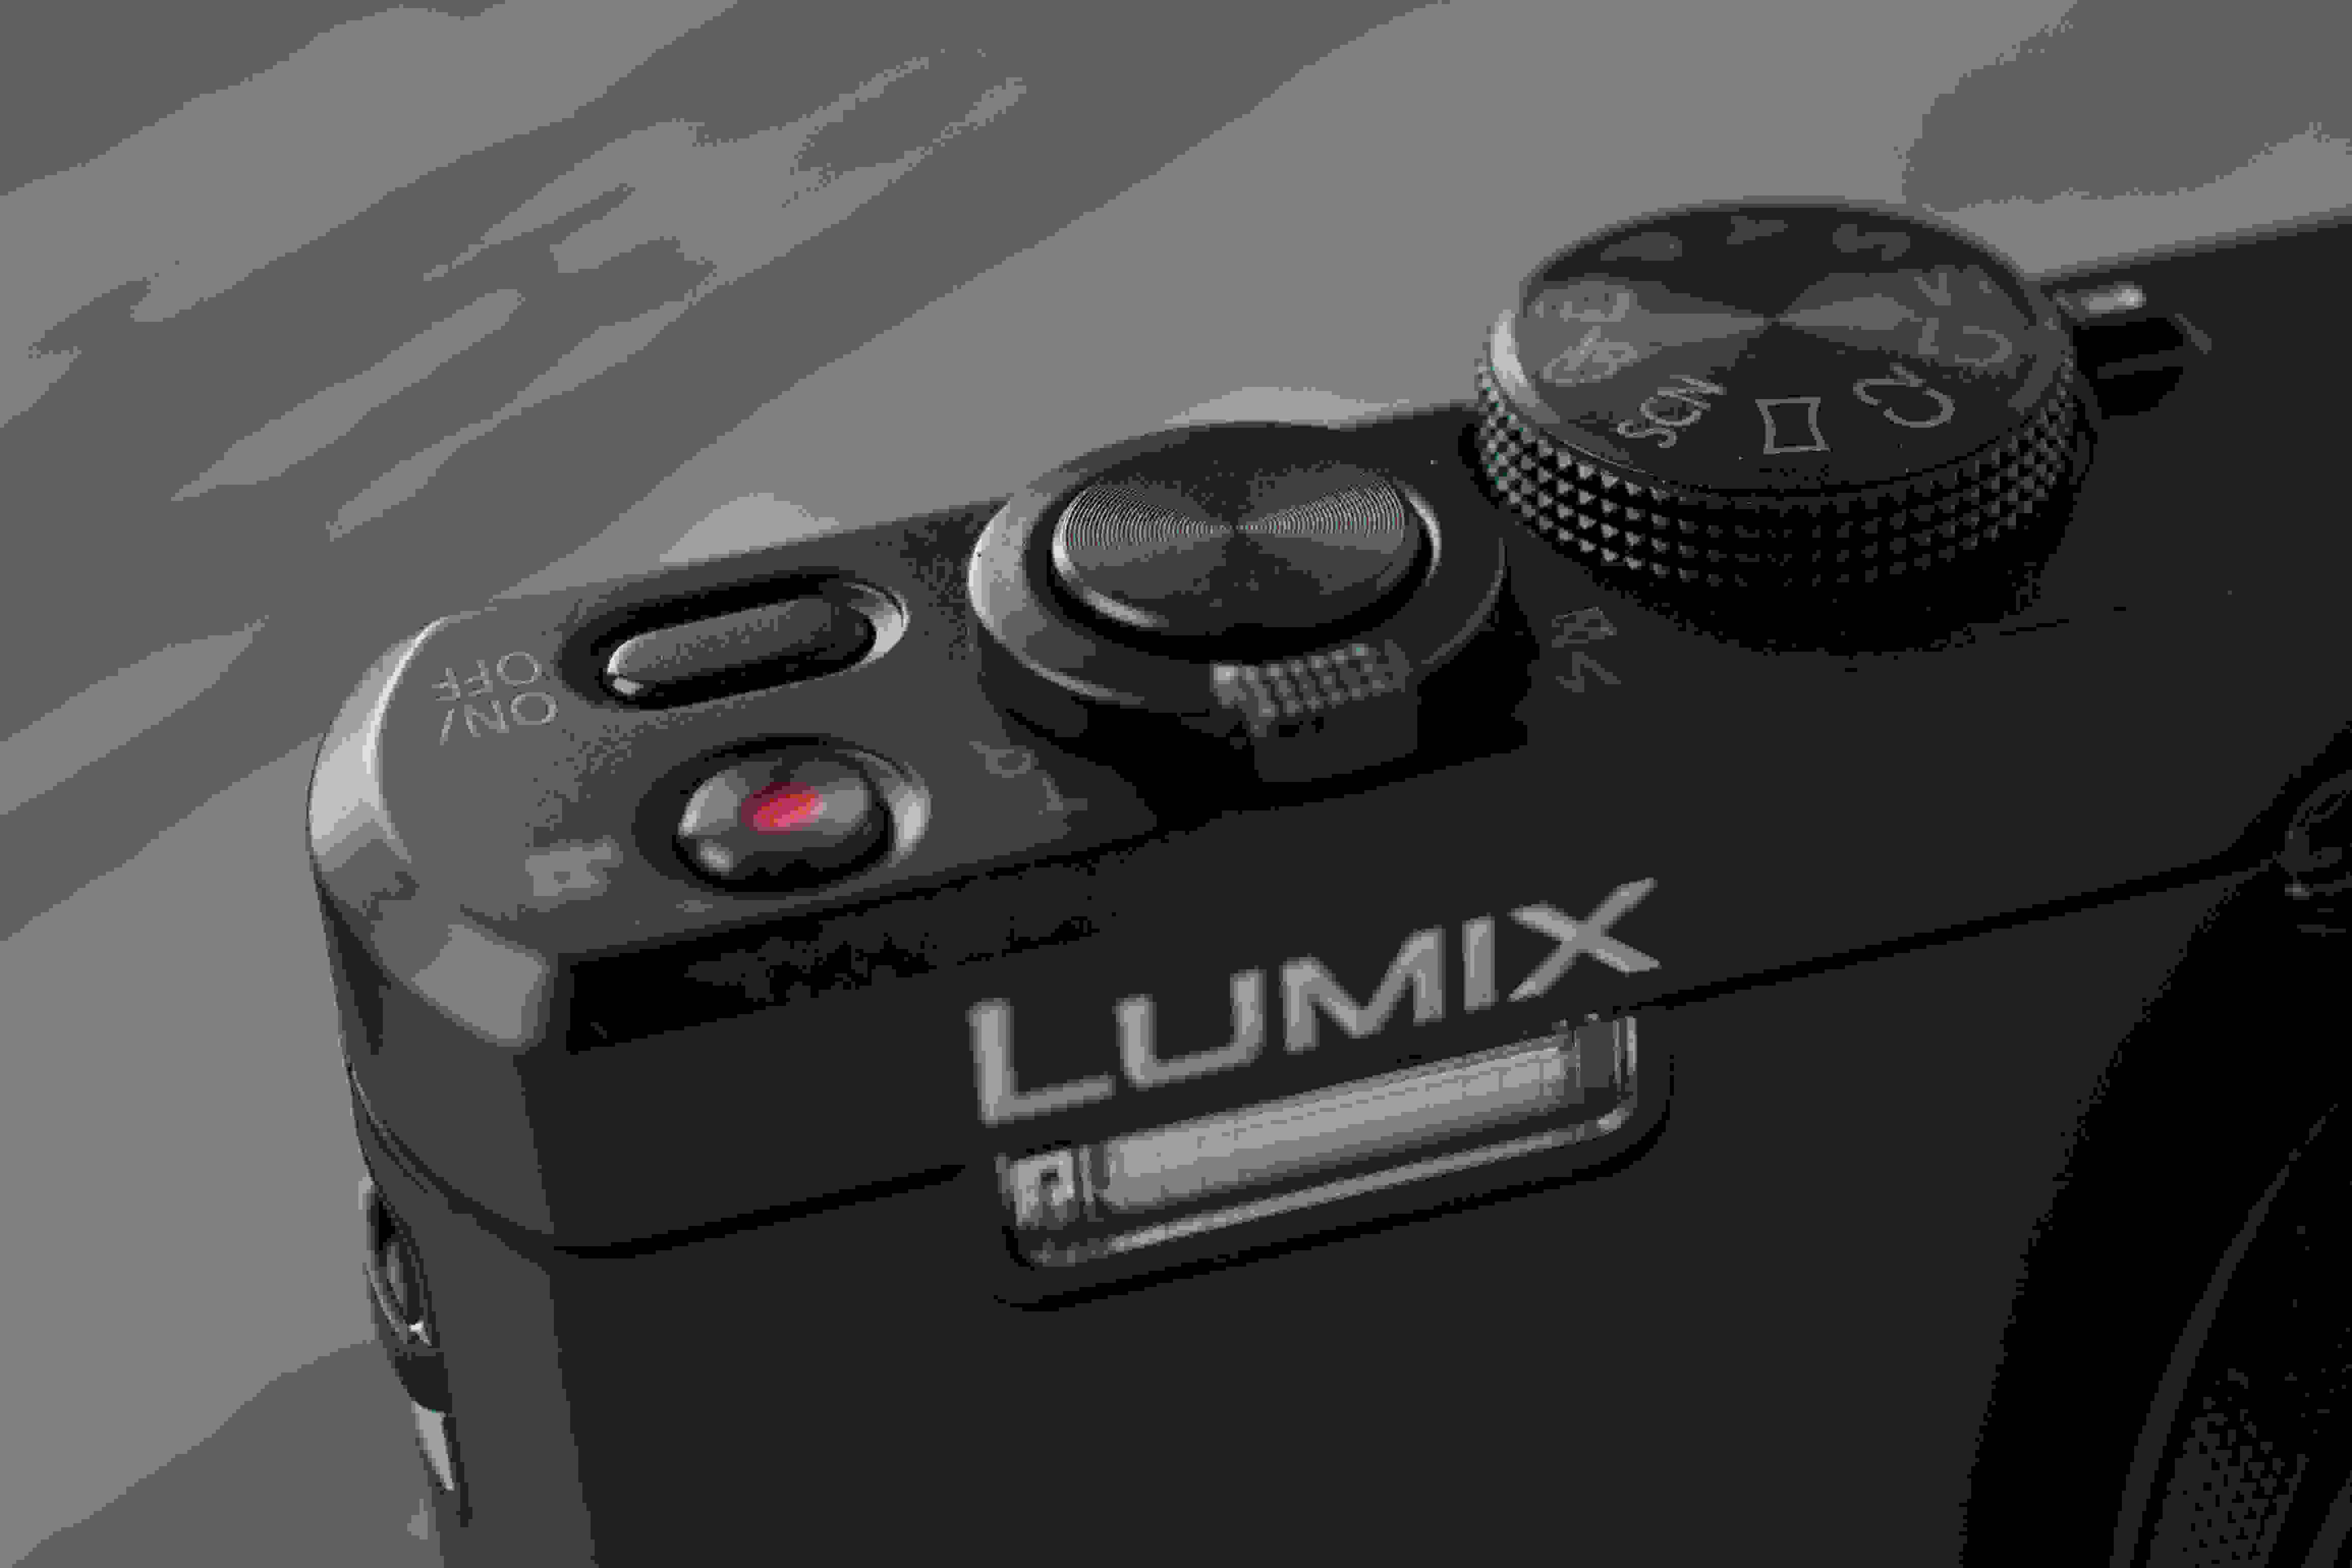 A picture of the Panasonic Lumix ZS40's shutter release.